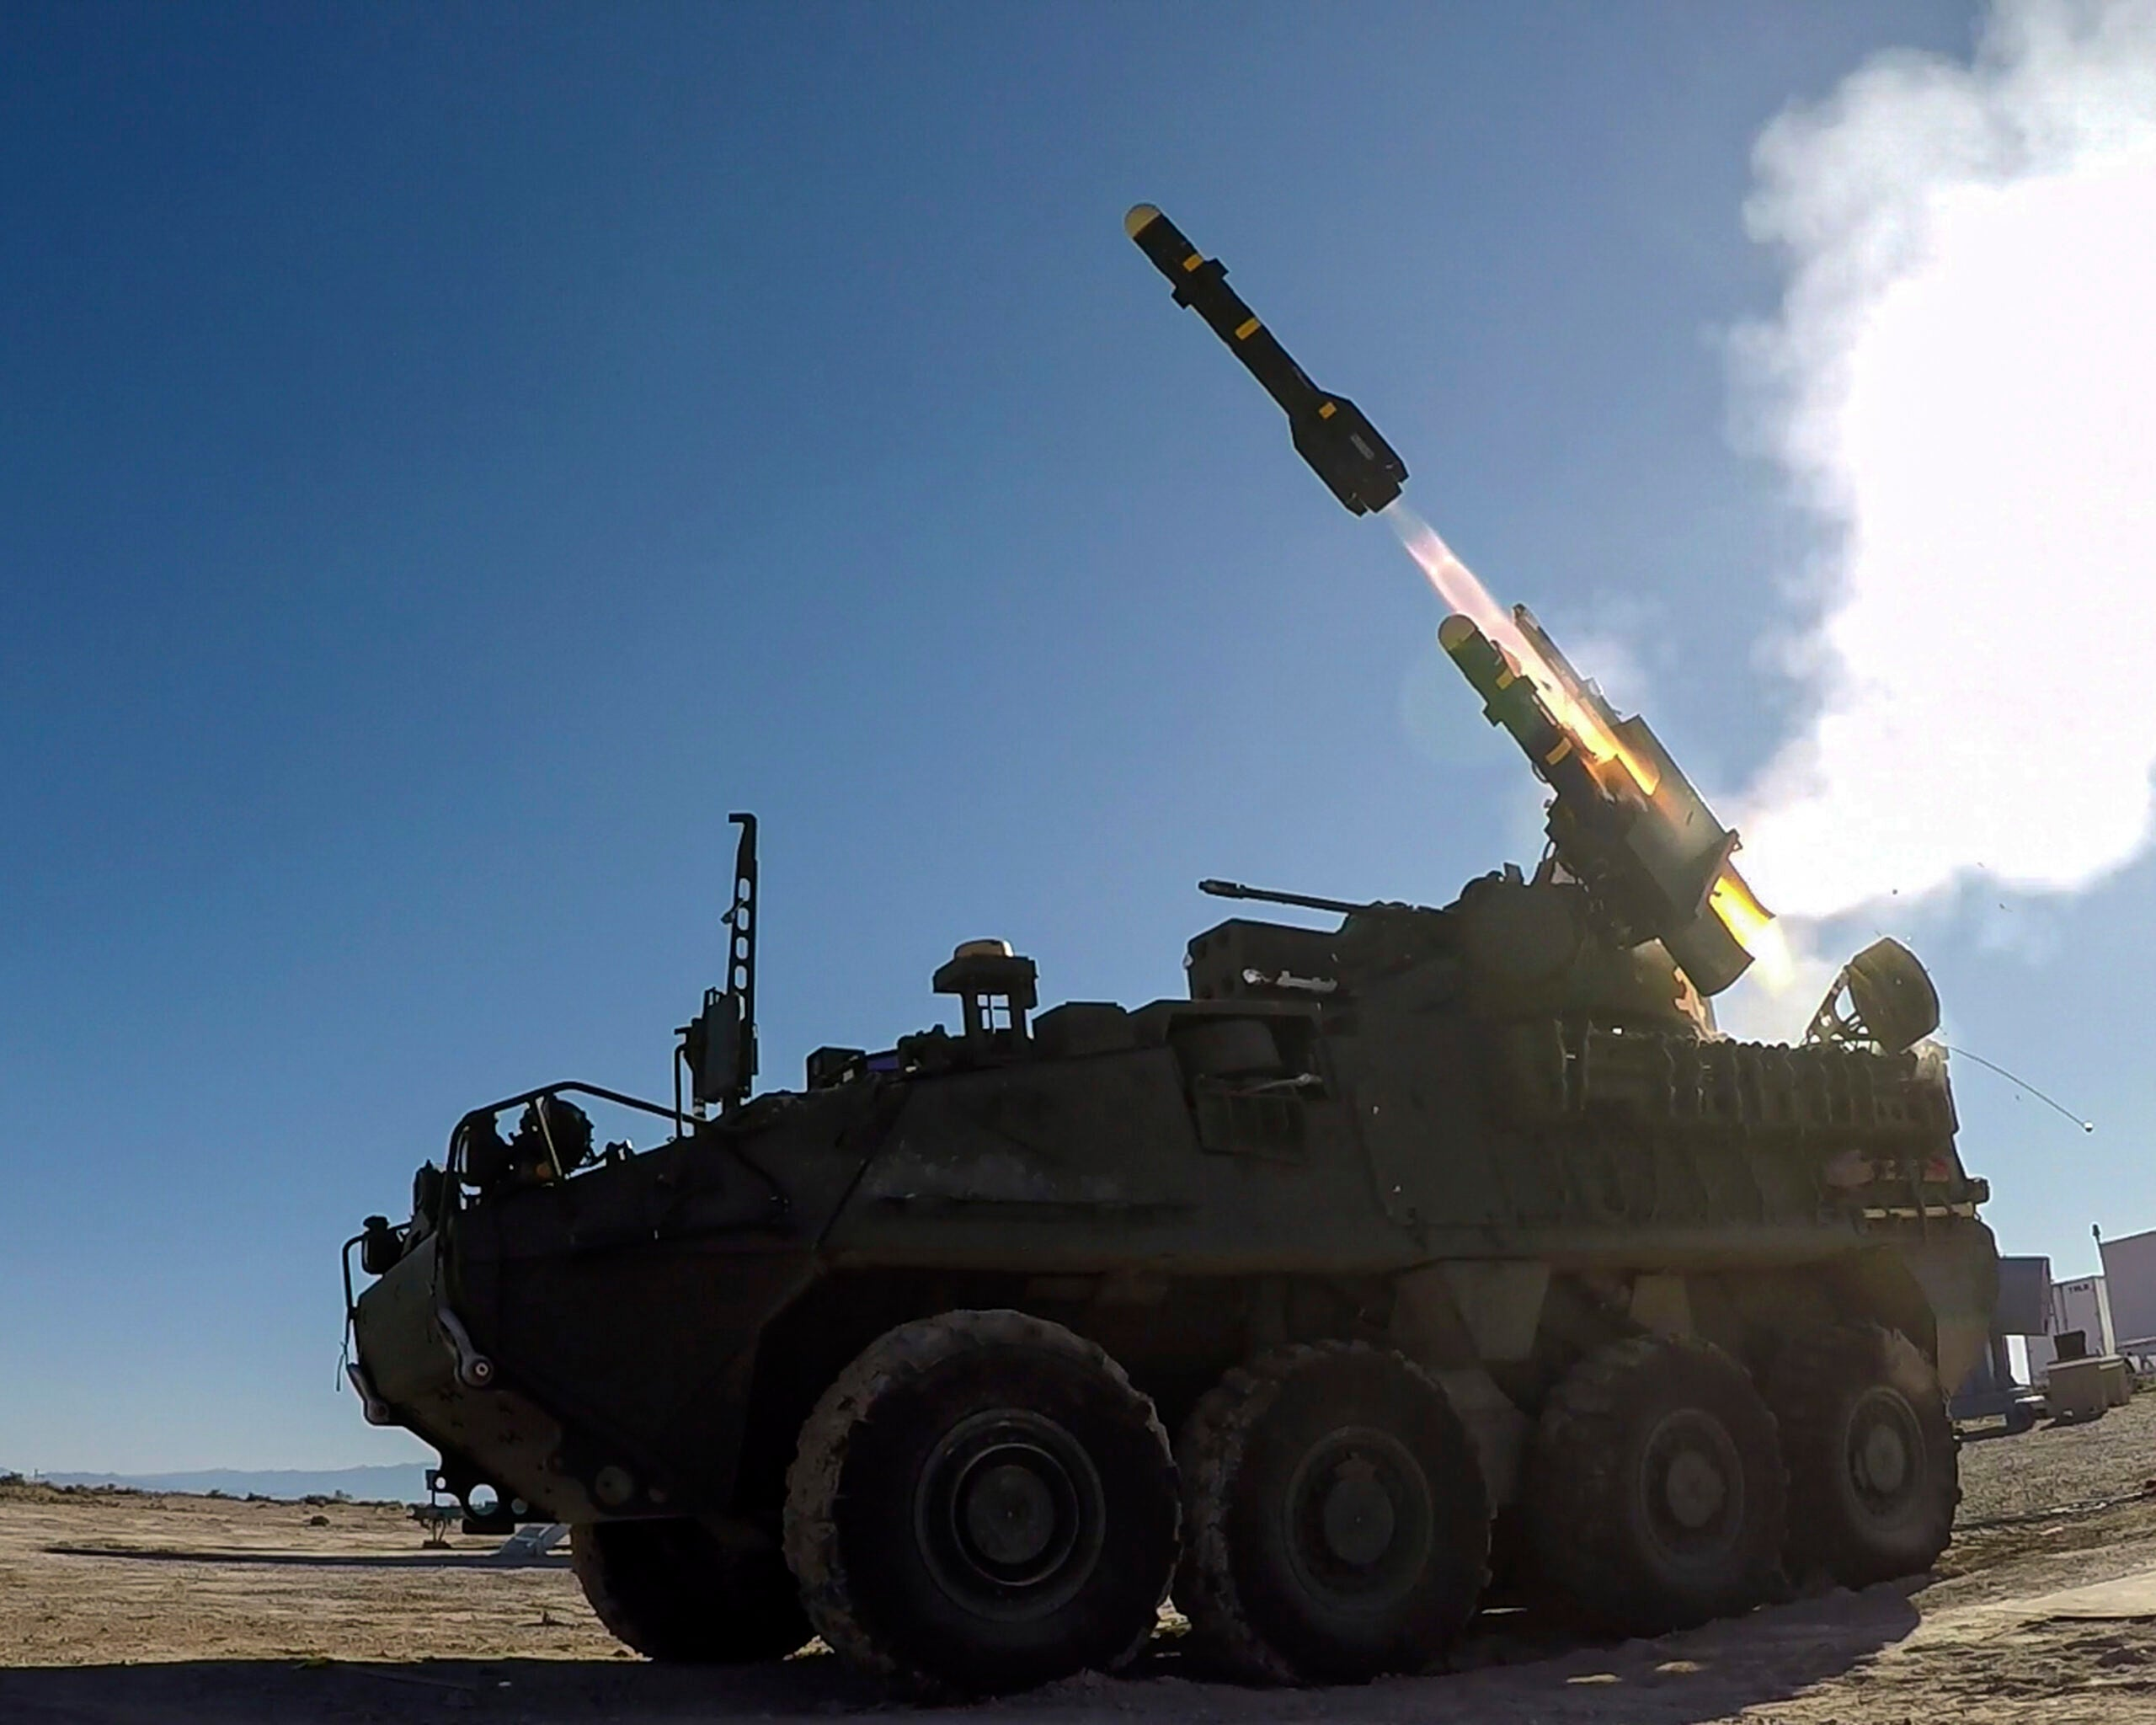 Watch the Army's new missile-hauling Stryker in action